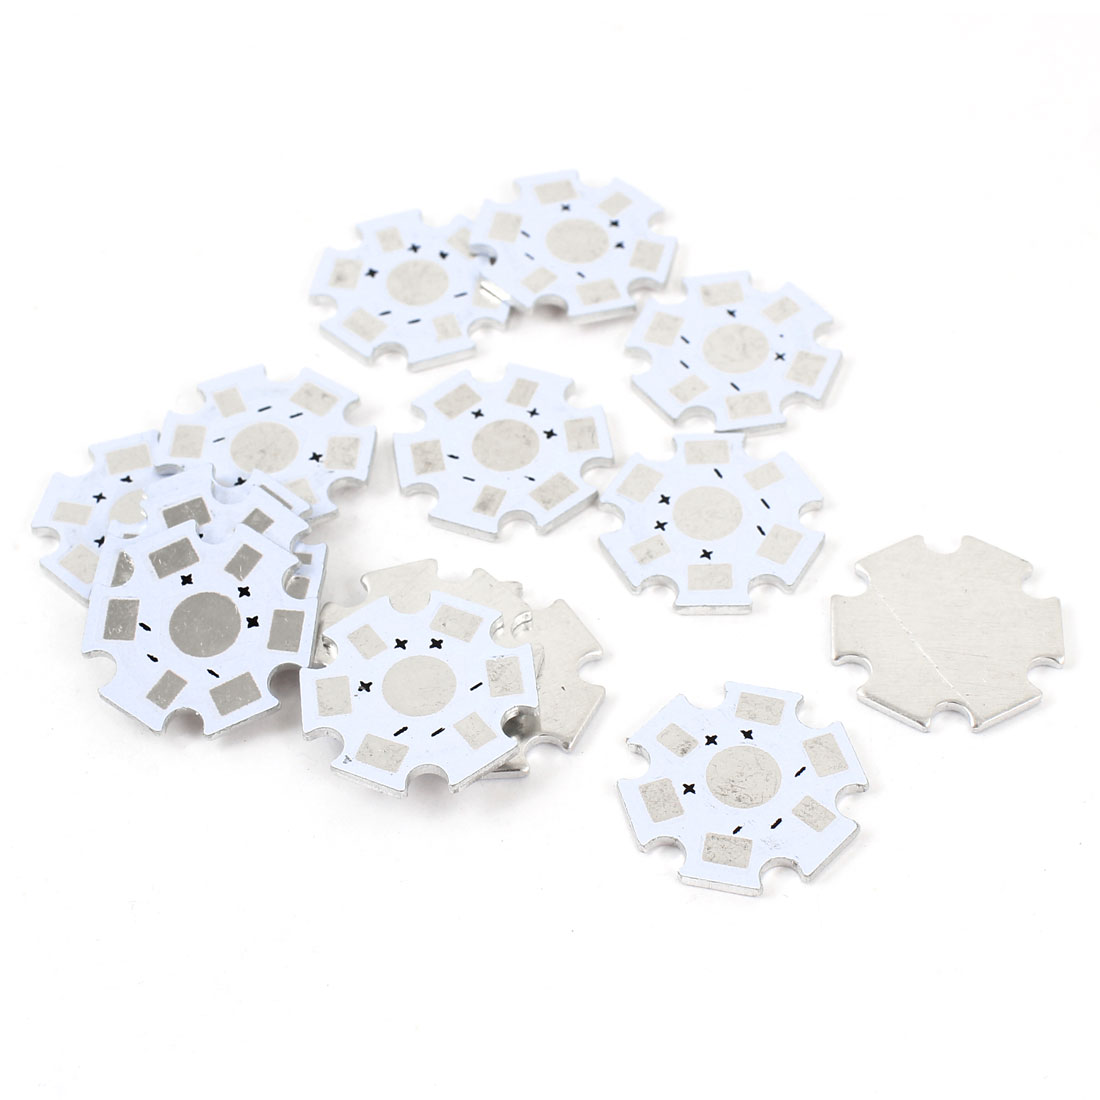 20mm 1W 3W 5W High Power LED Aluminum Base Heatsink Plate Replacement 15Pcs